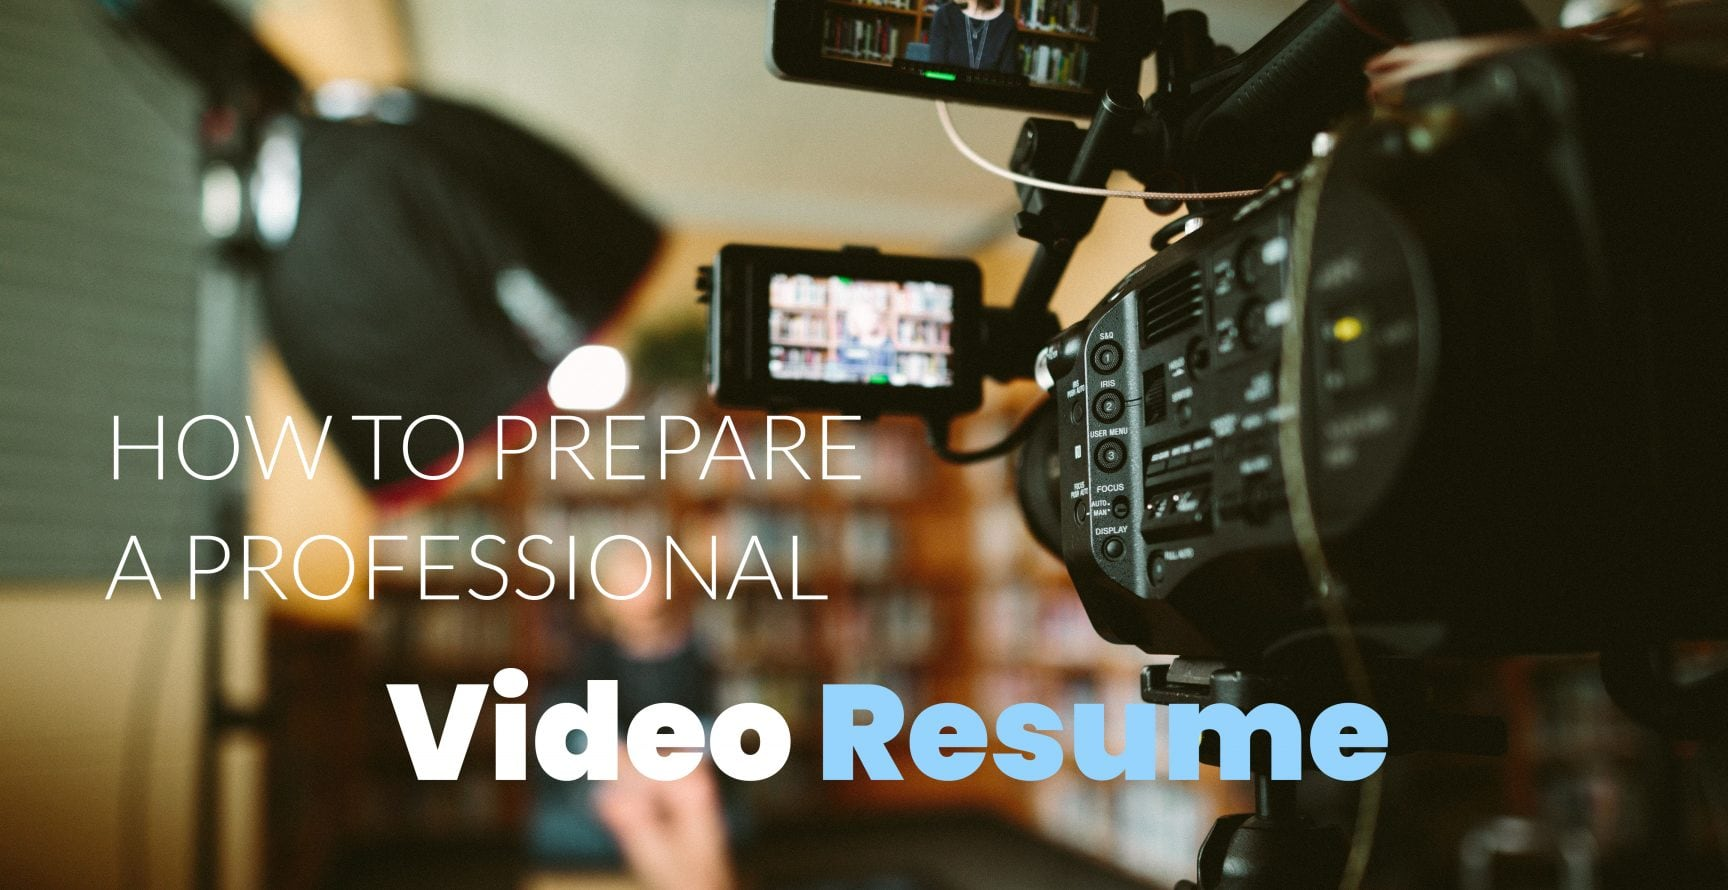 How to prepare a professional video resume - camera records woman